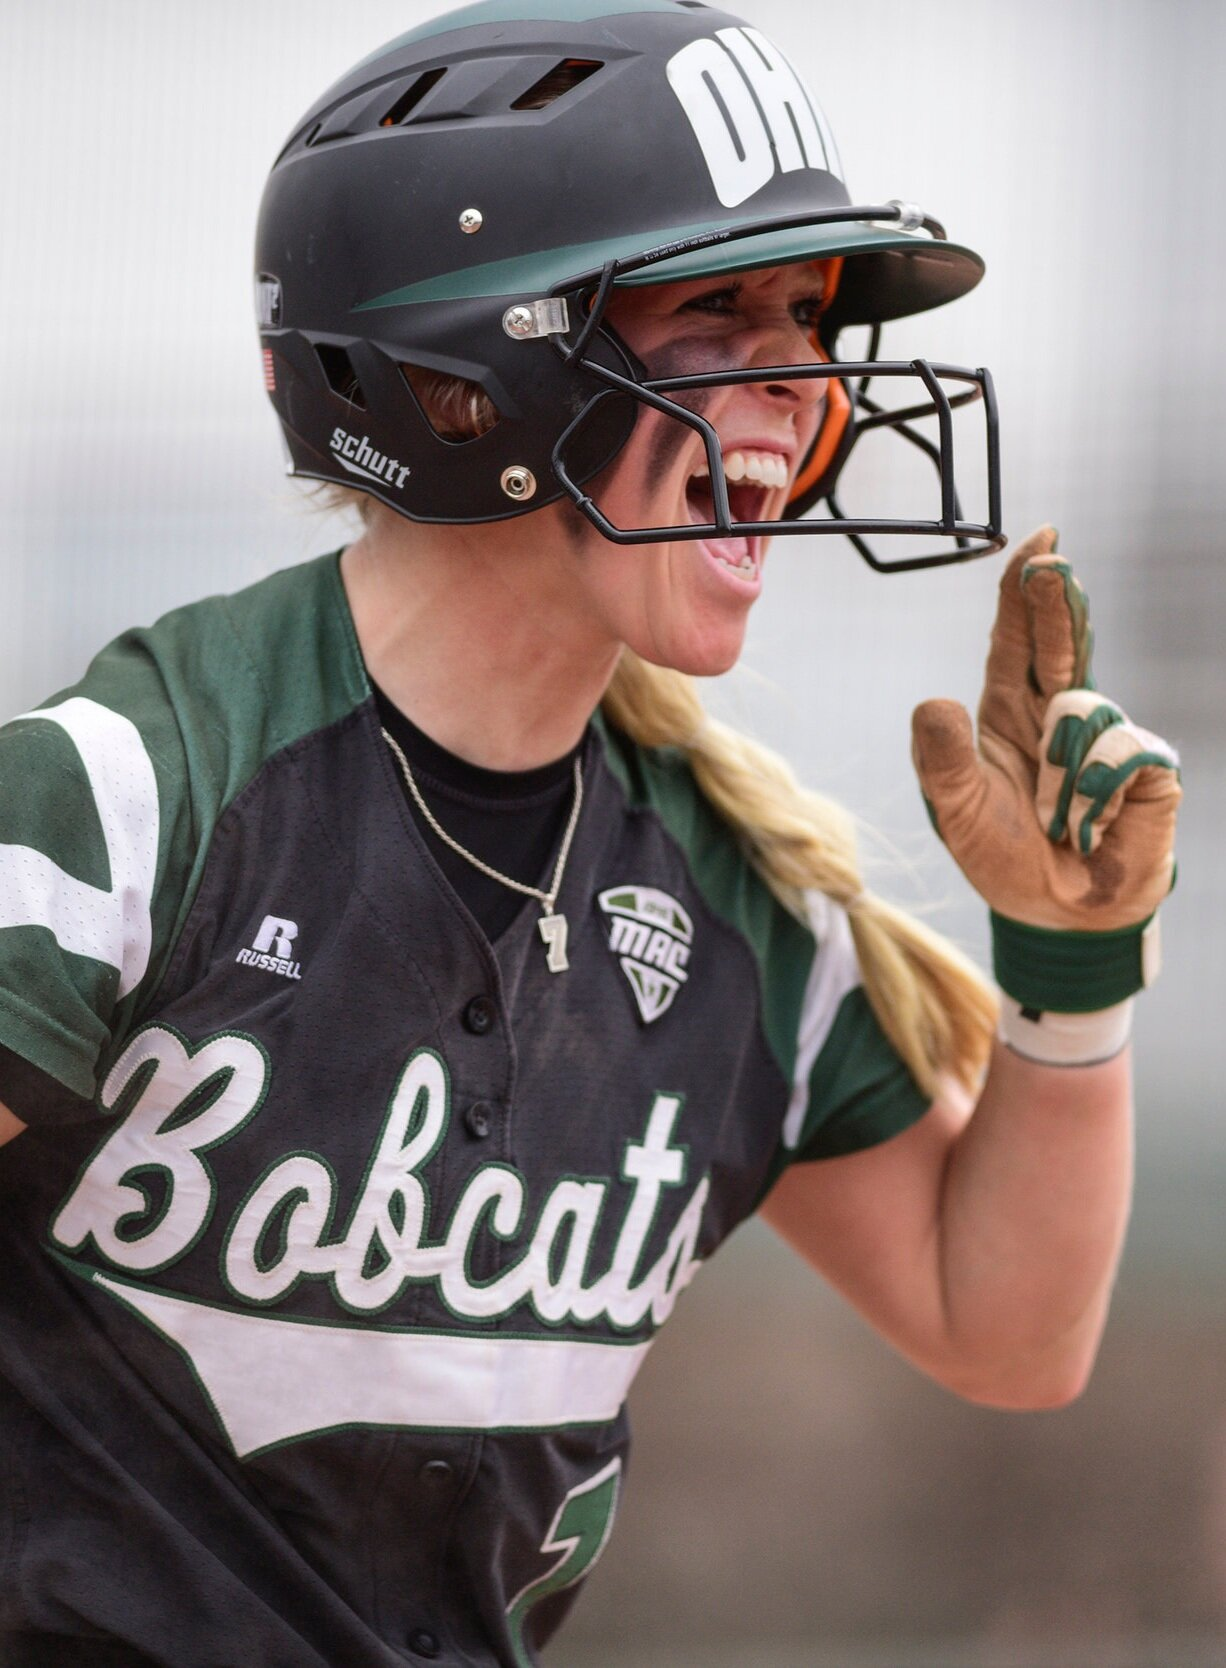 Ohio's Taylor Saxton celebrates after she scores another run in the March 25, 2017, game against Toledo at the Ohio Softball Stadium.